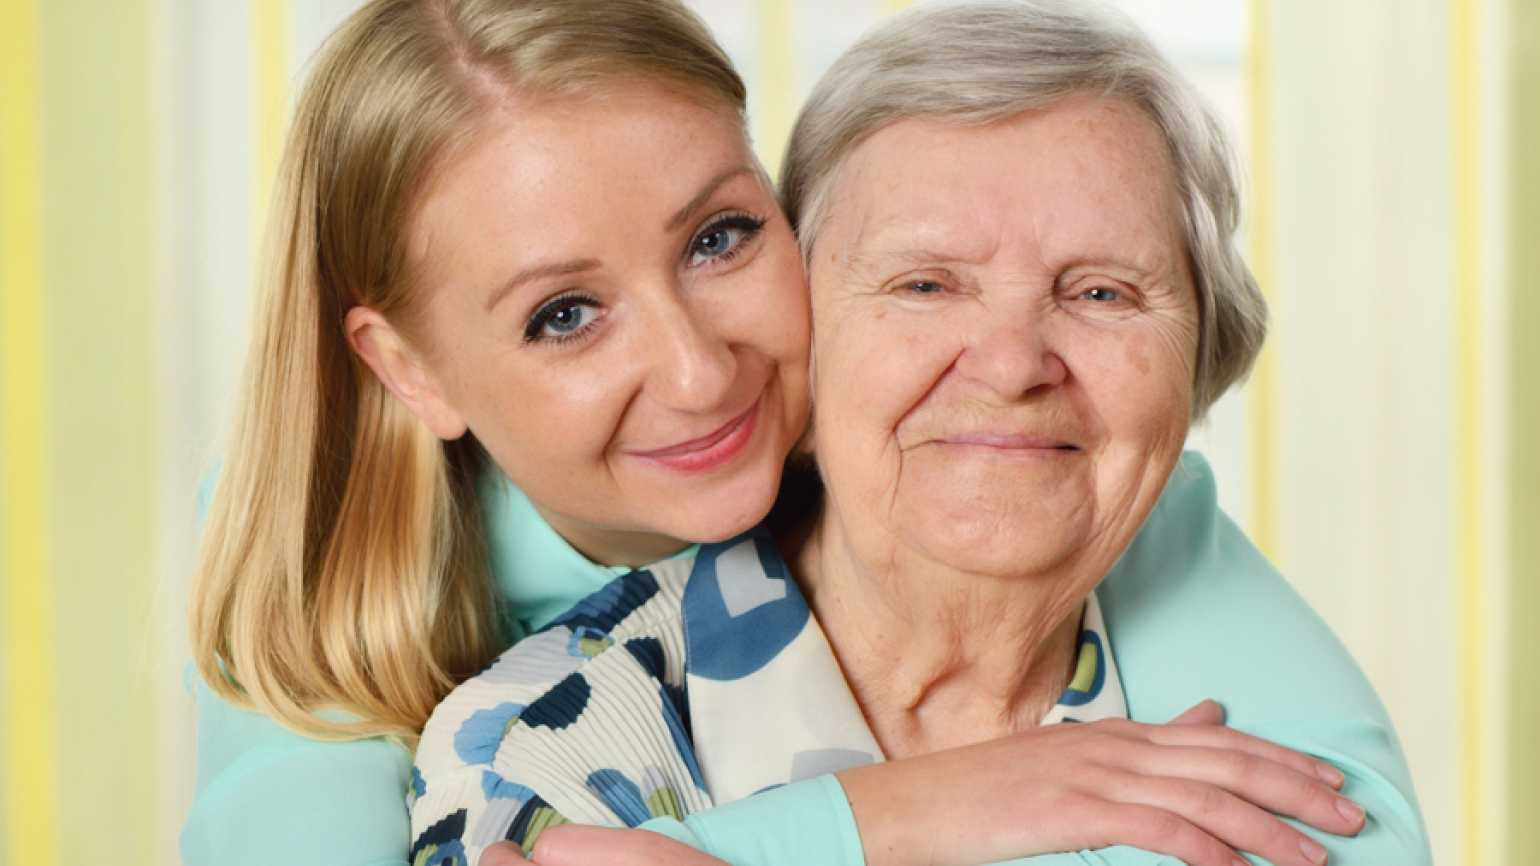 7 Tips for Coping With the Emotions of Caregiving